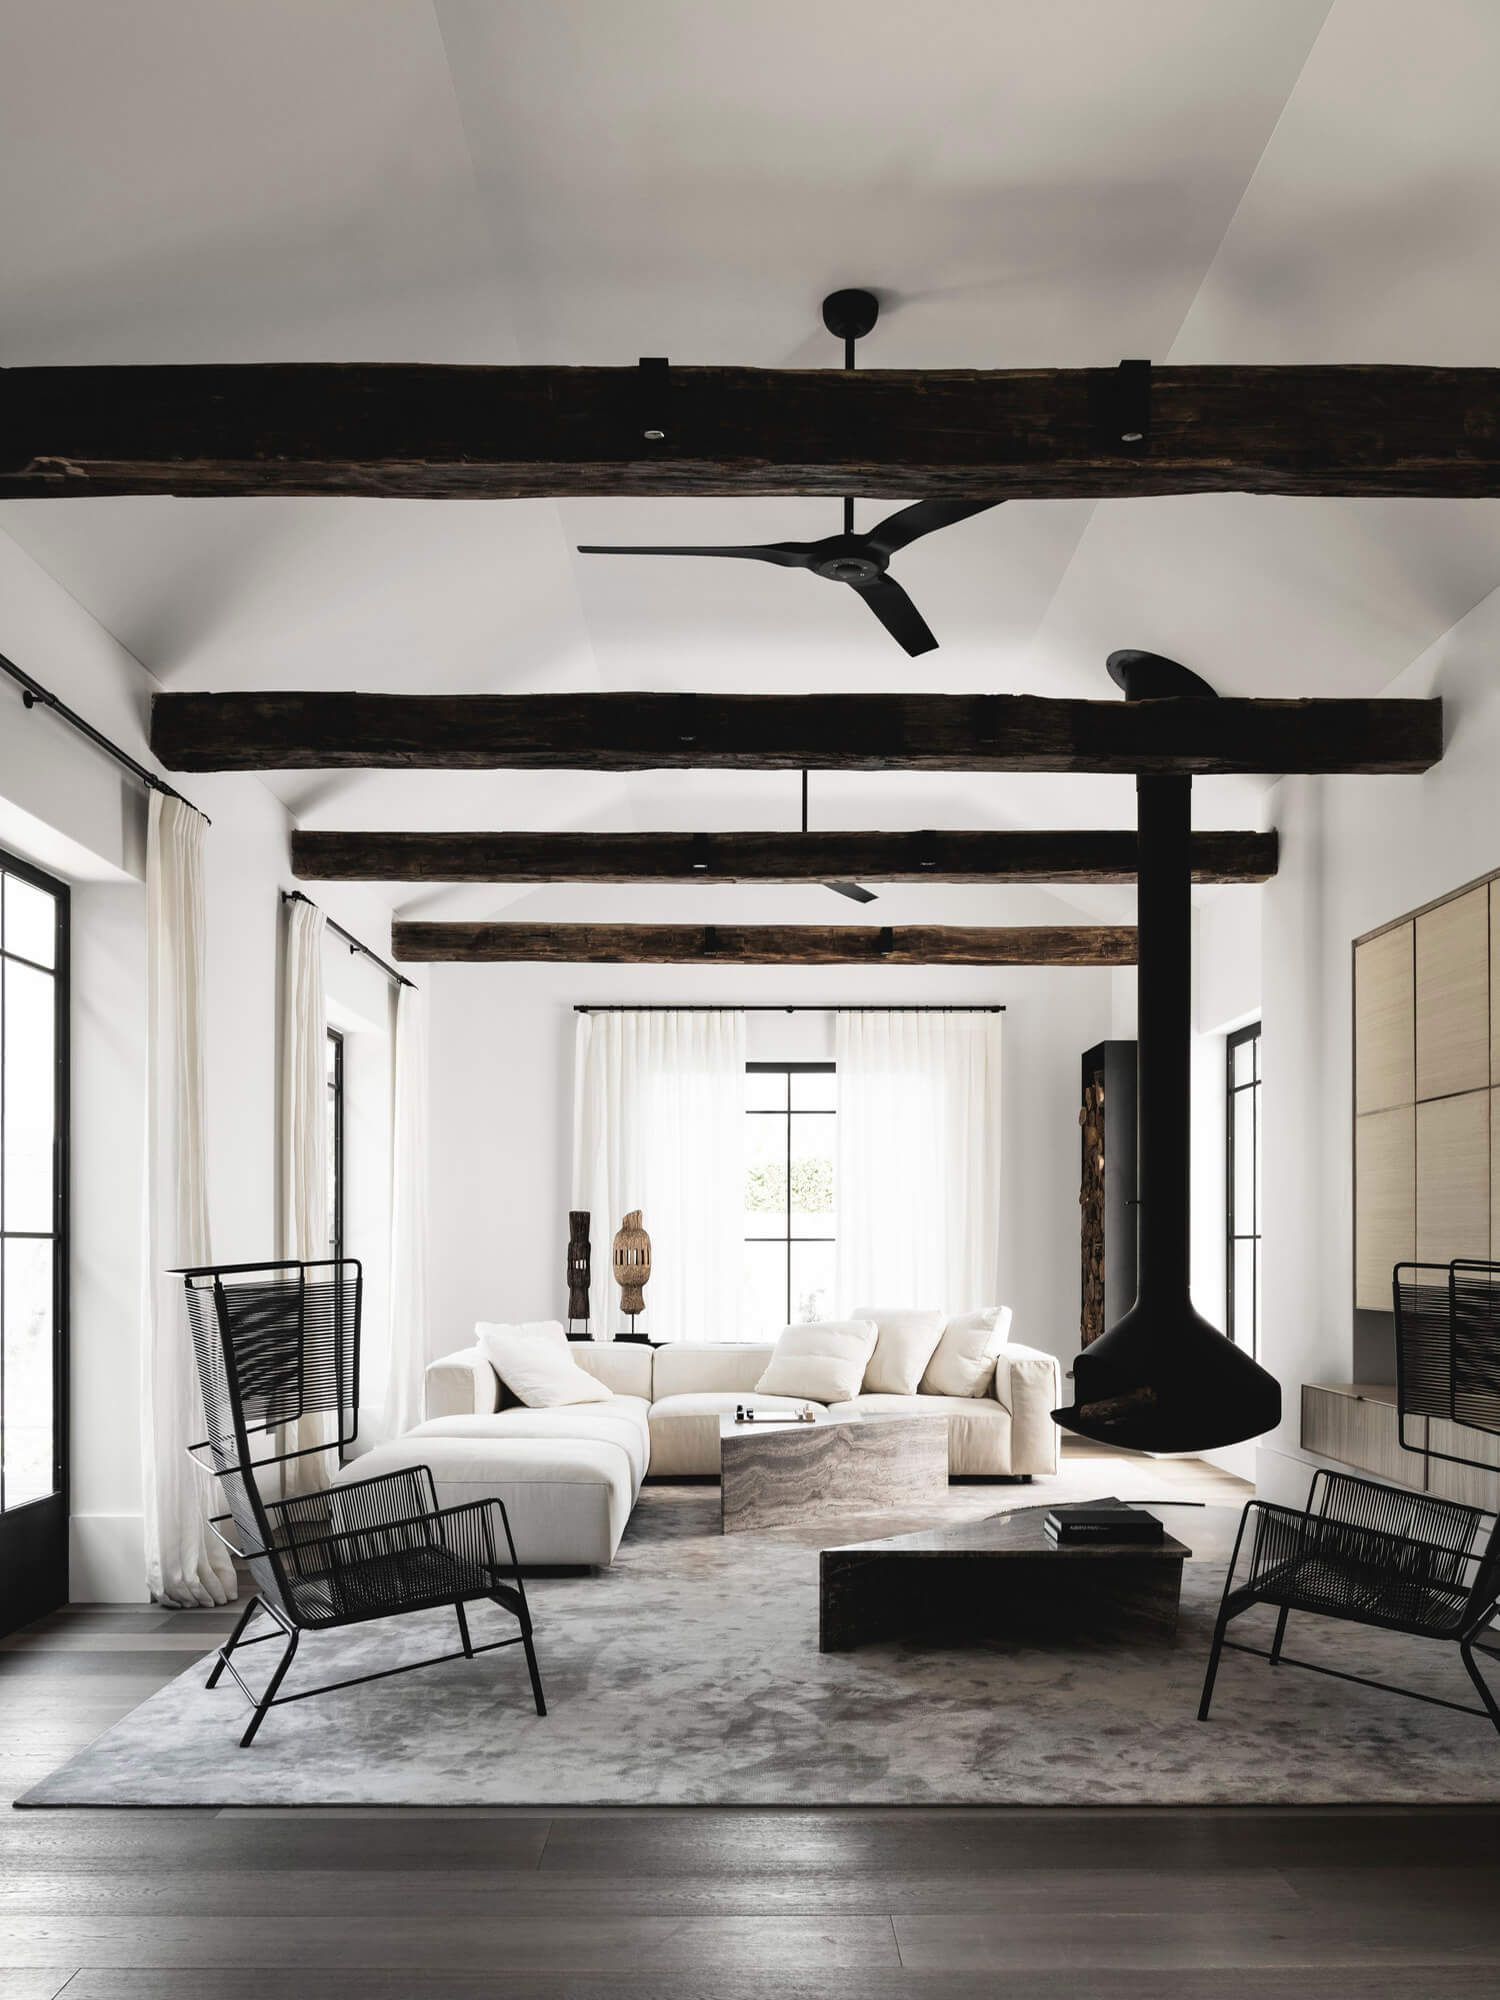 Get the Look Flemish Farmhouse is part of Cottage Living Room Black - Coveting a European look that marries raw materials with sleek design cues  Here's our product and material recommendations for creating a Flemish Farmhouse space